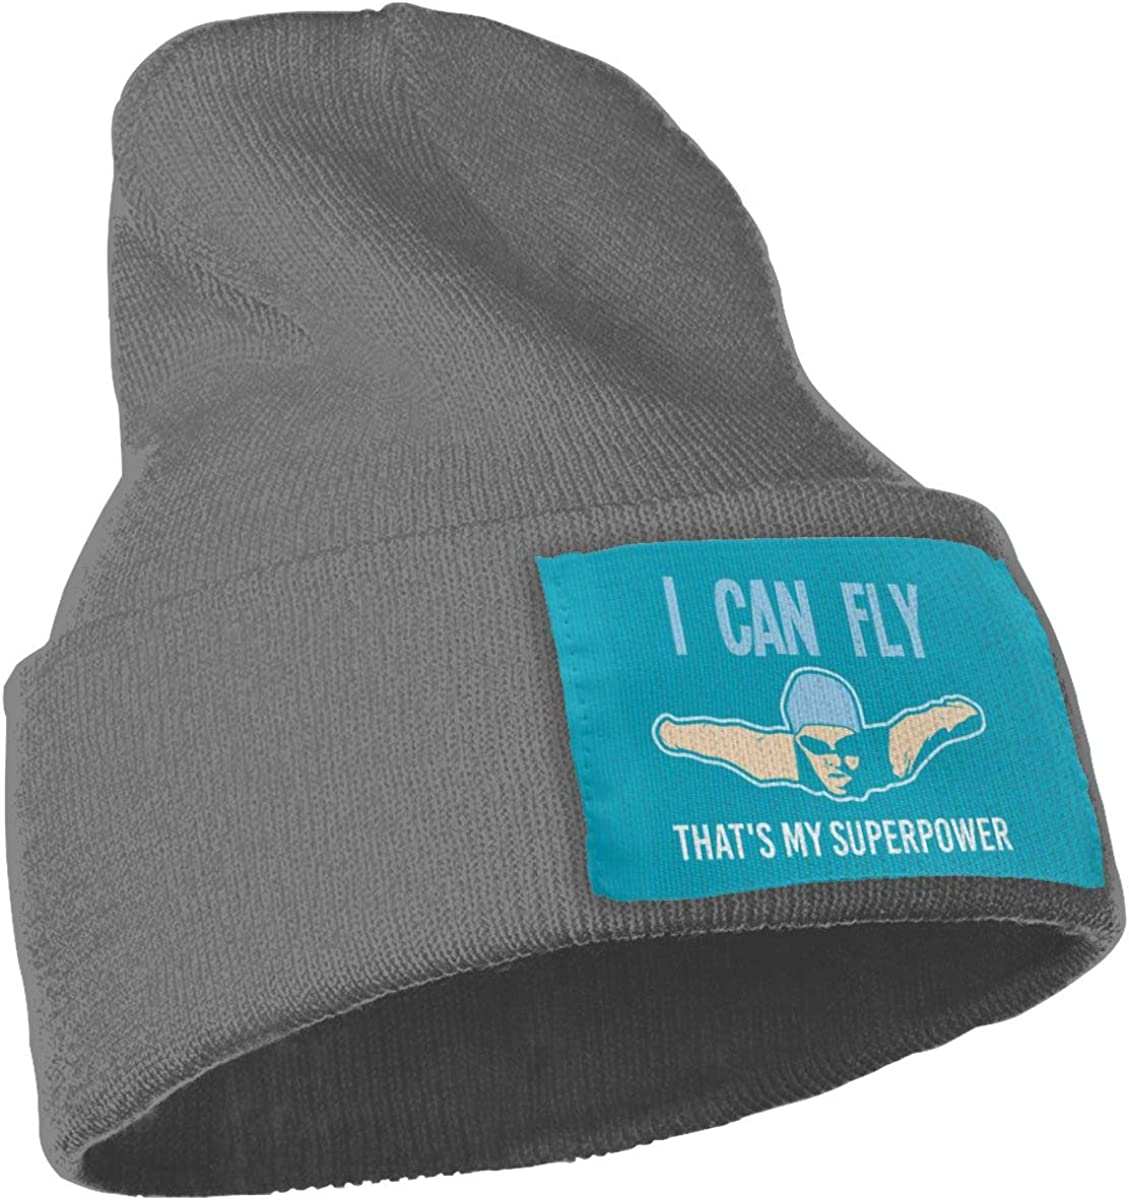 Oopp Jfhg I Can Fly Thats My Superpower 1 Wool Cap Skull Hats Unisex Winter